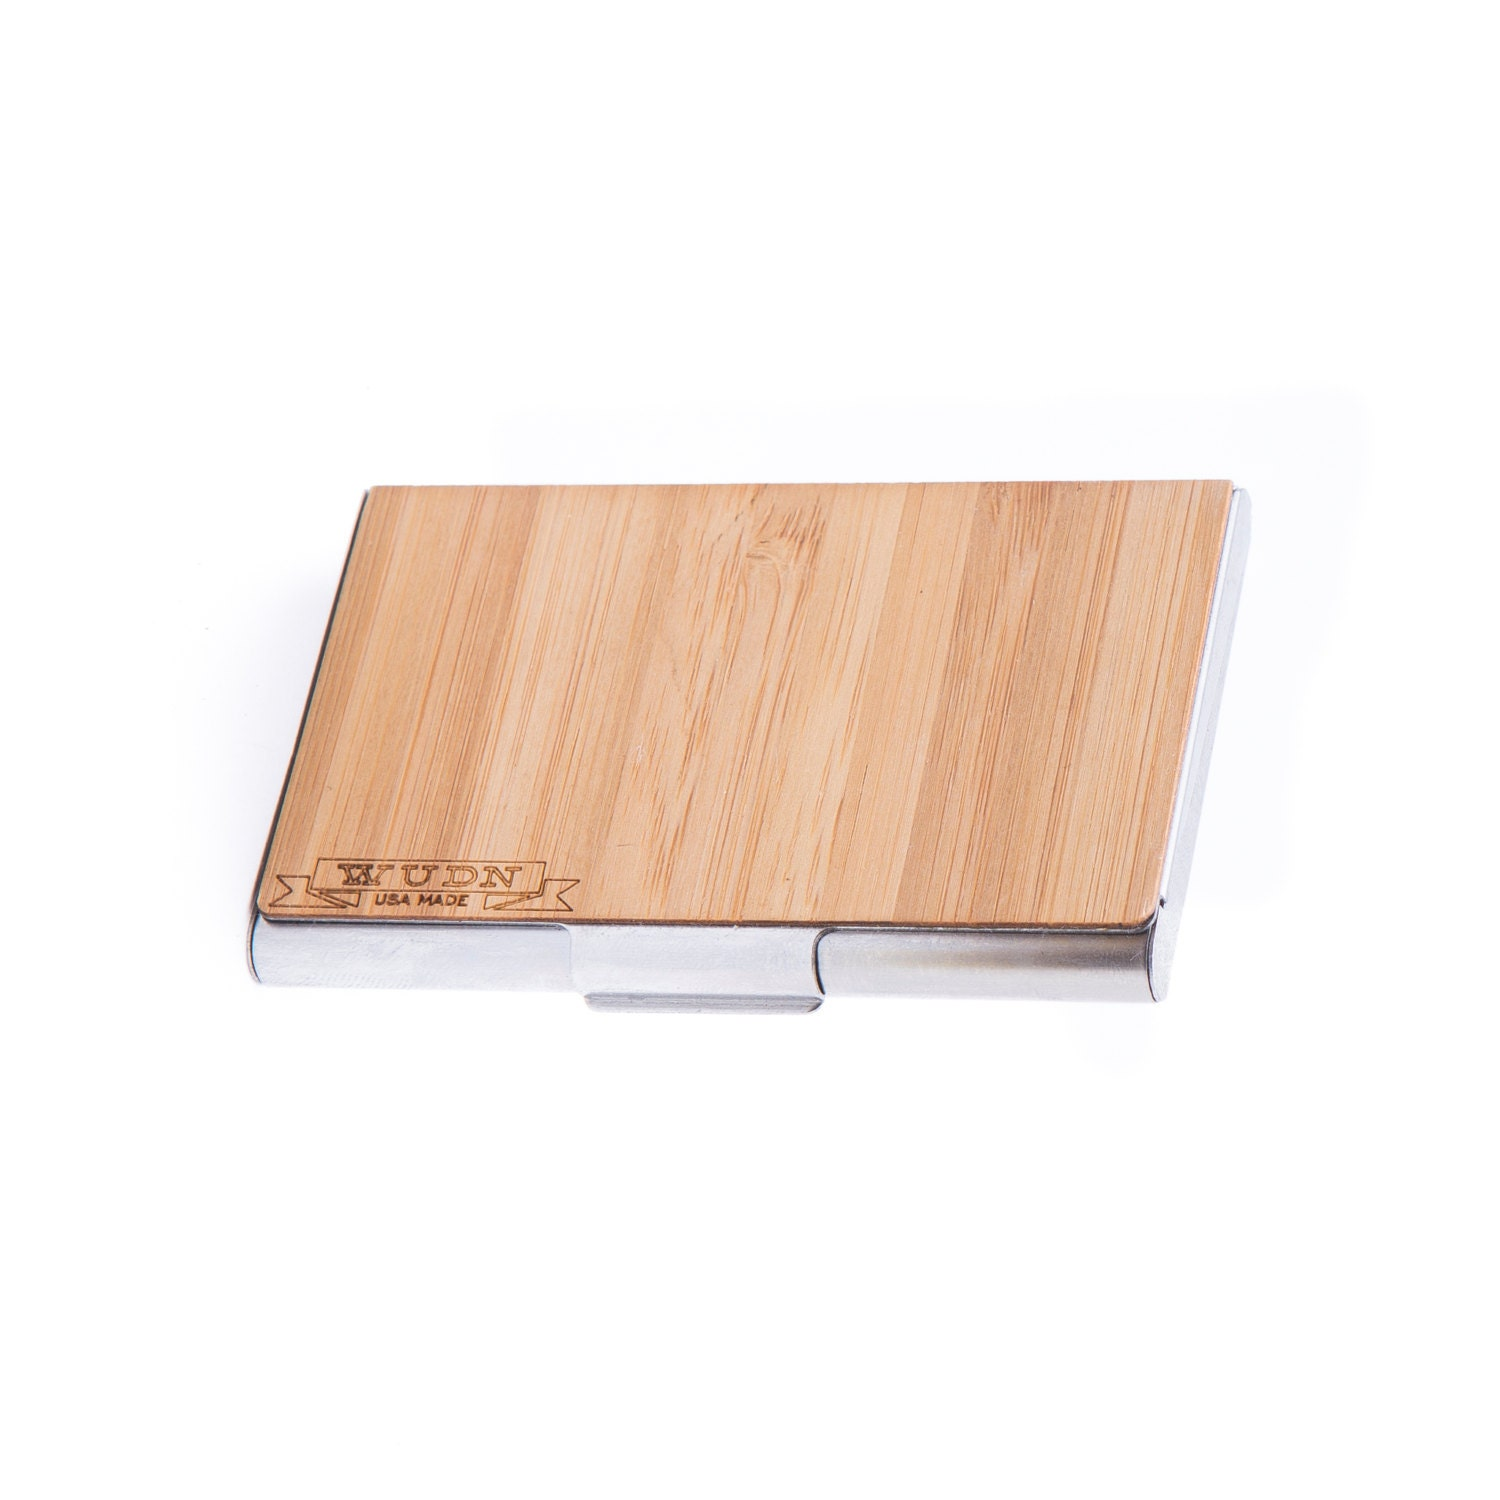 Bamboo wood business card holder father day gift by shopwudn for Bamboo business card holder